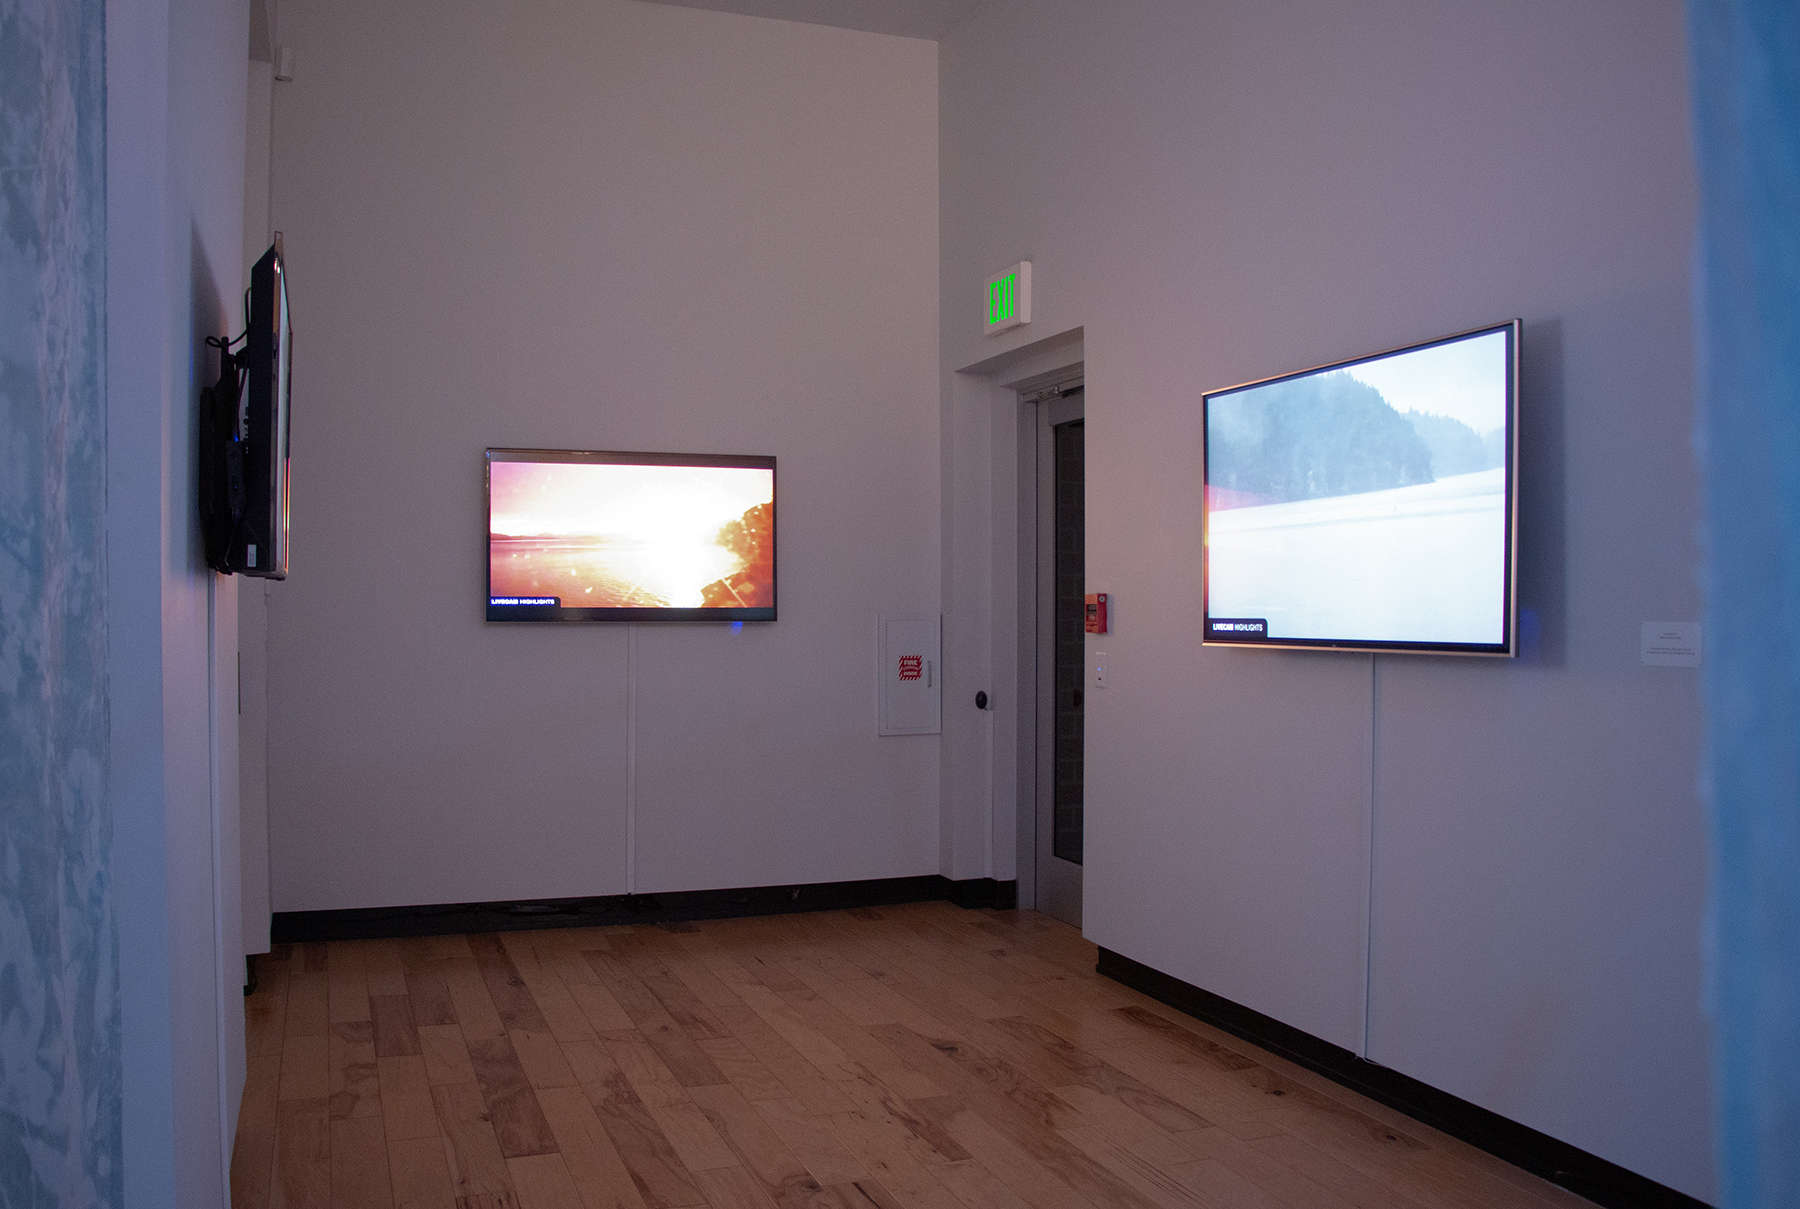 Installation View of Livestream Monitors